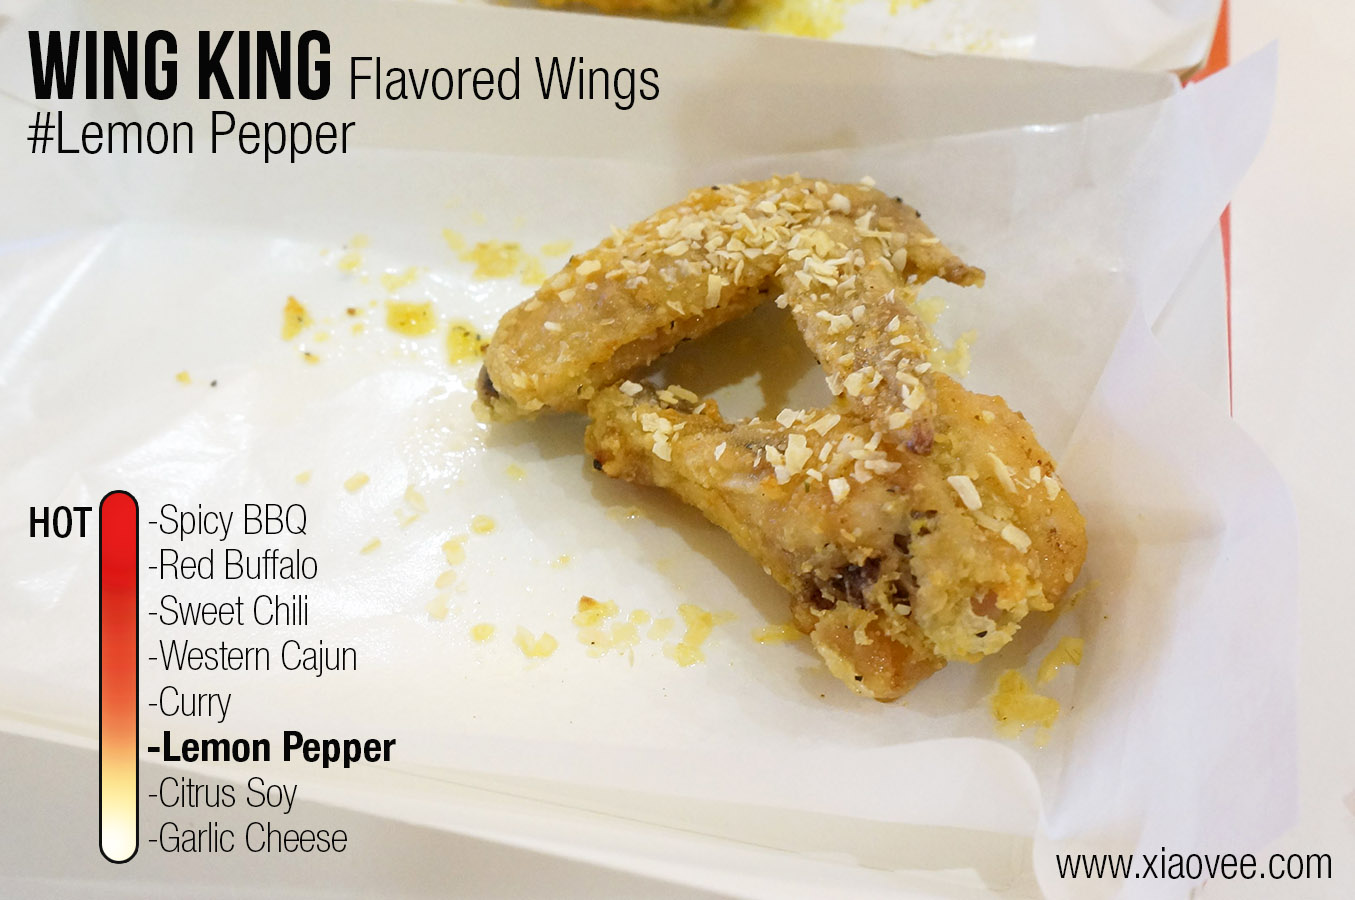 flavored wing king lemon pepper